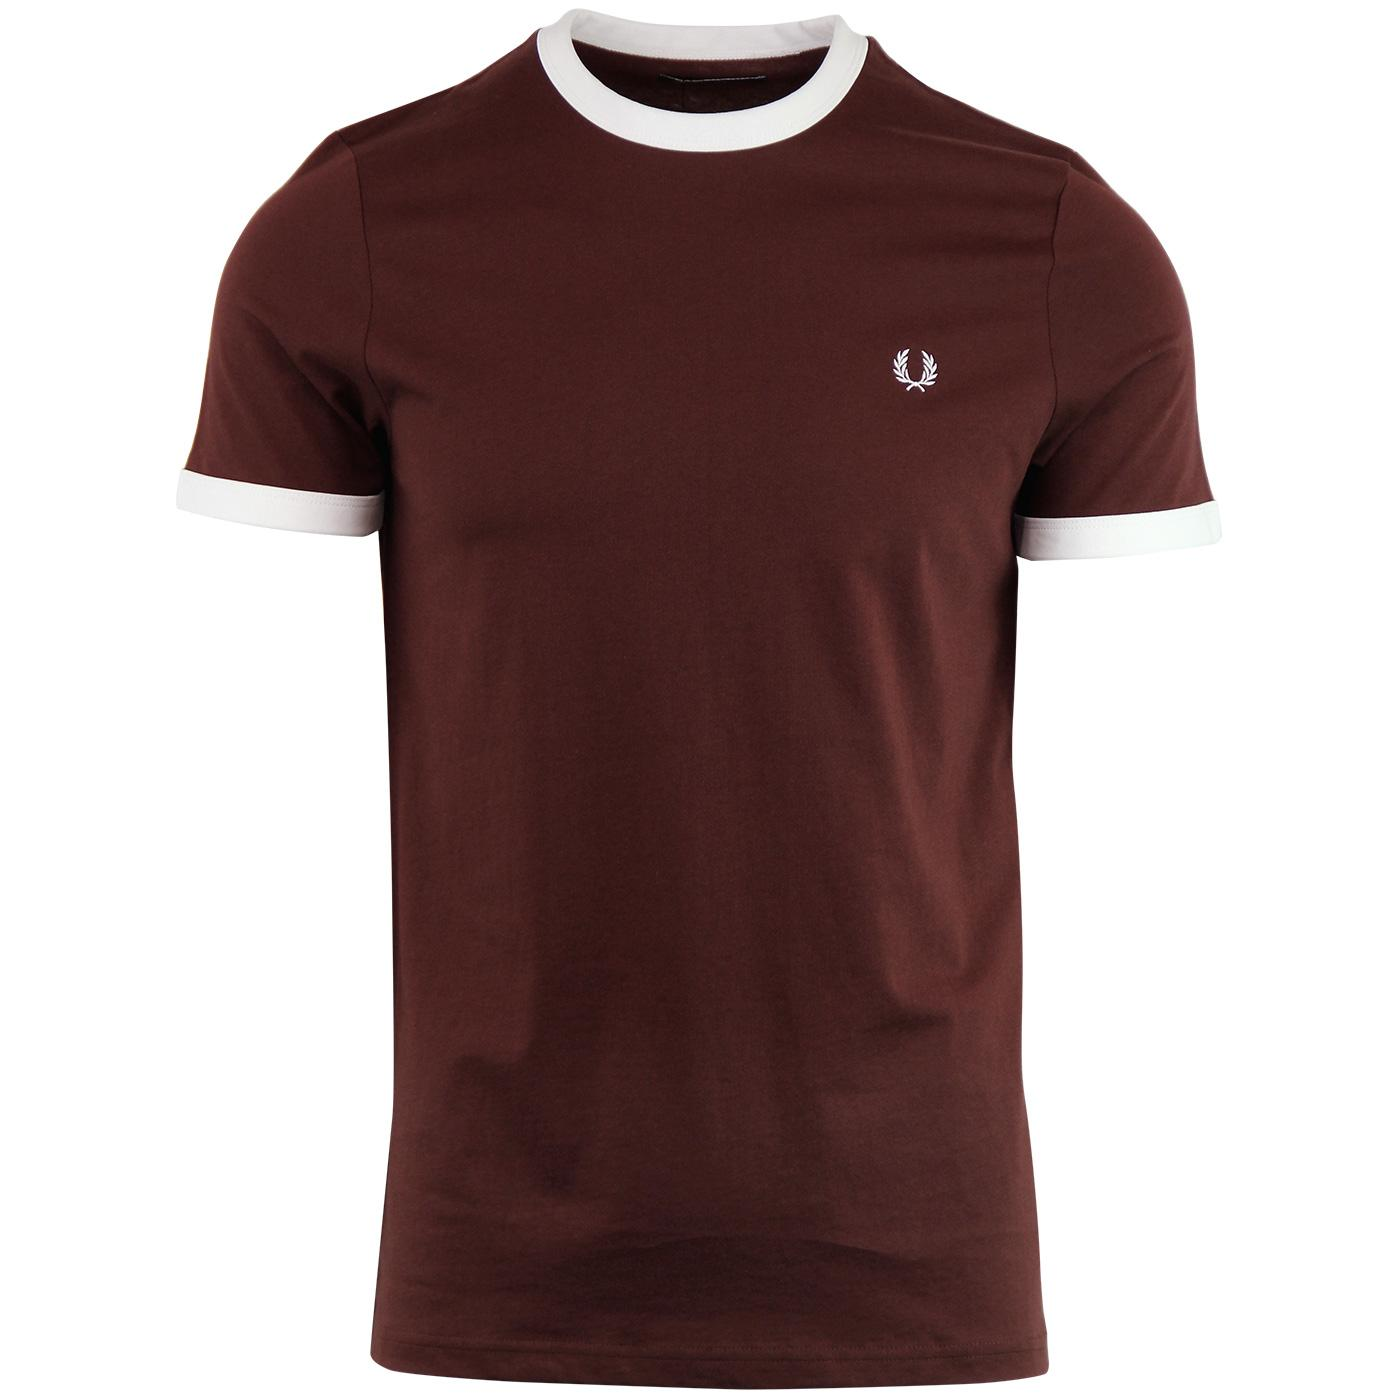 FRED PERRY Retro 1960's Ringer Tee - Stadium Red